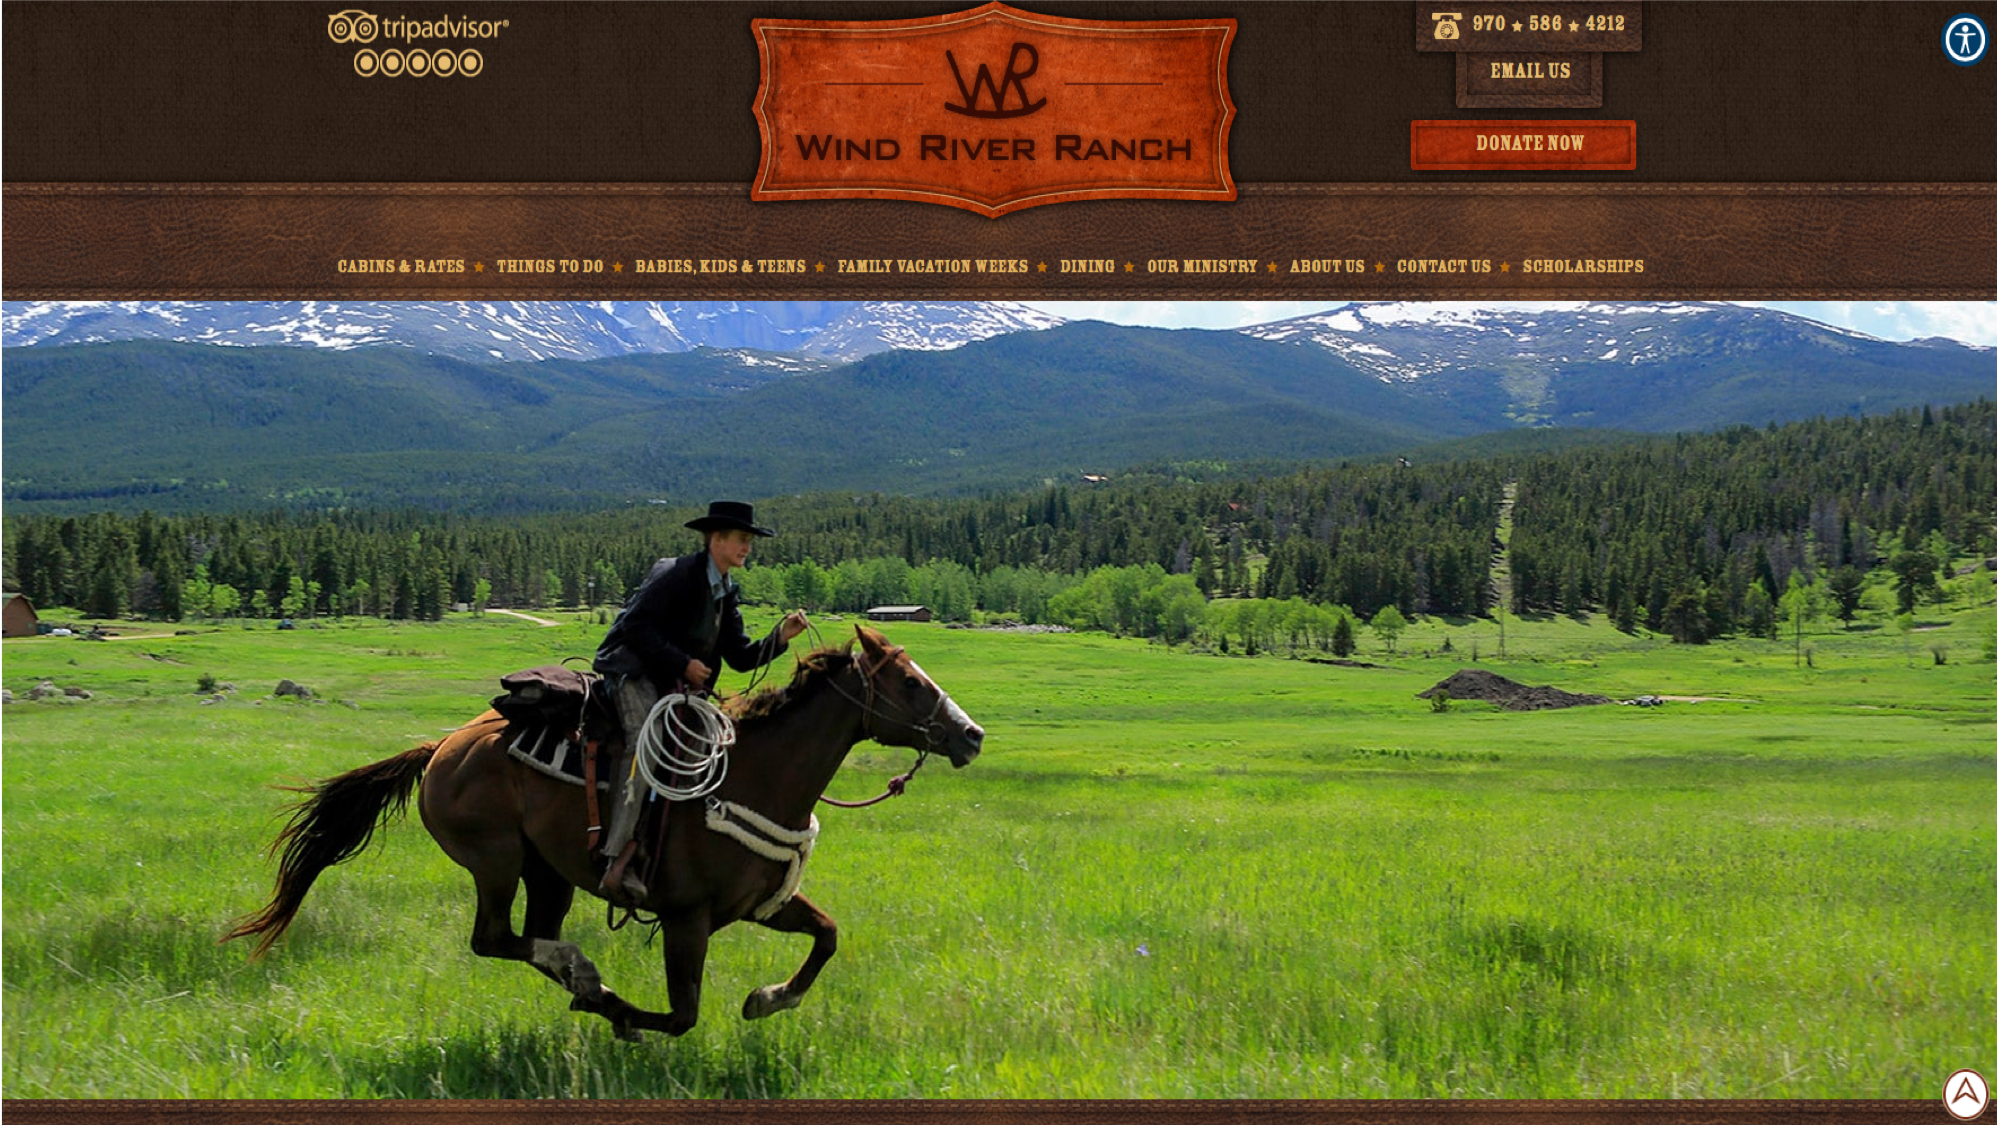 wind river ranch.png